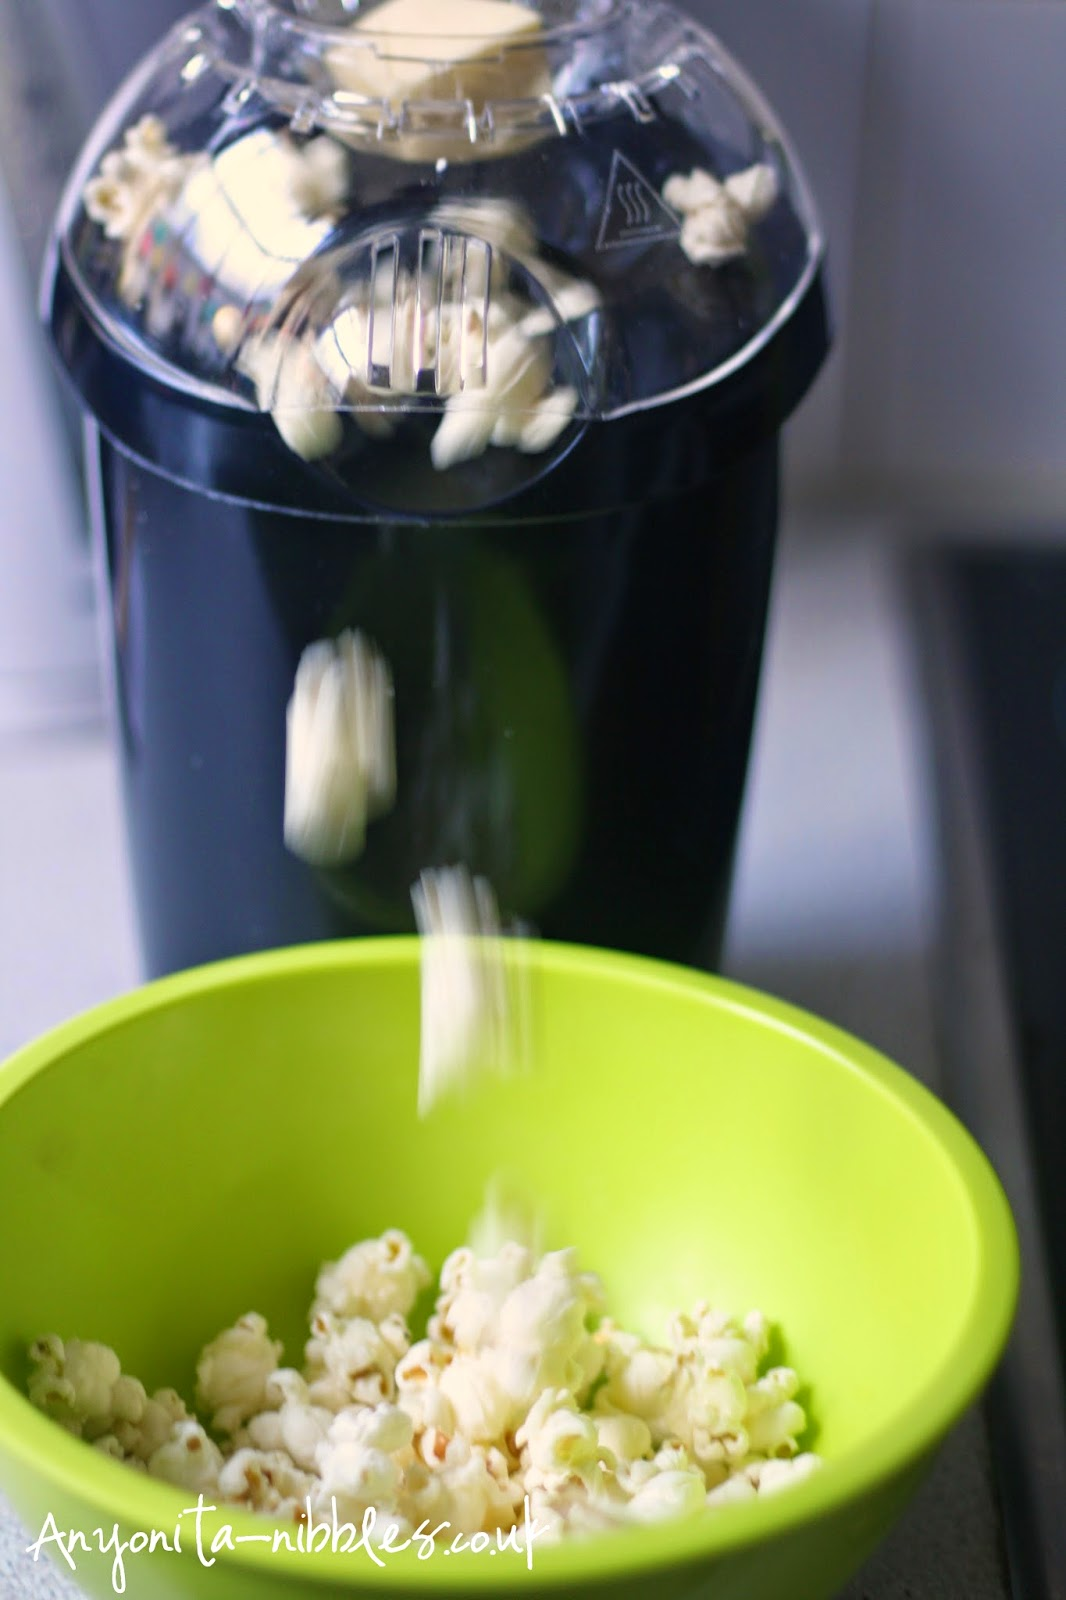 Hot air popcorn making in action from Anyonita-nibbles.co.uk